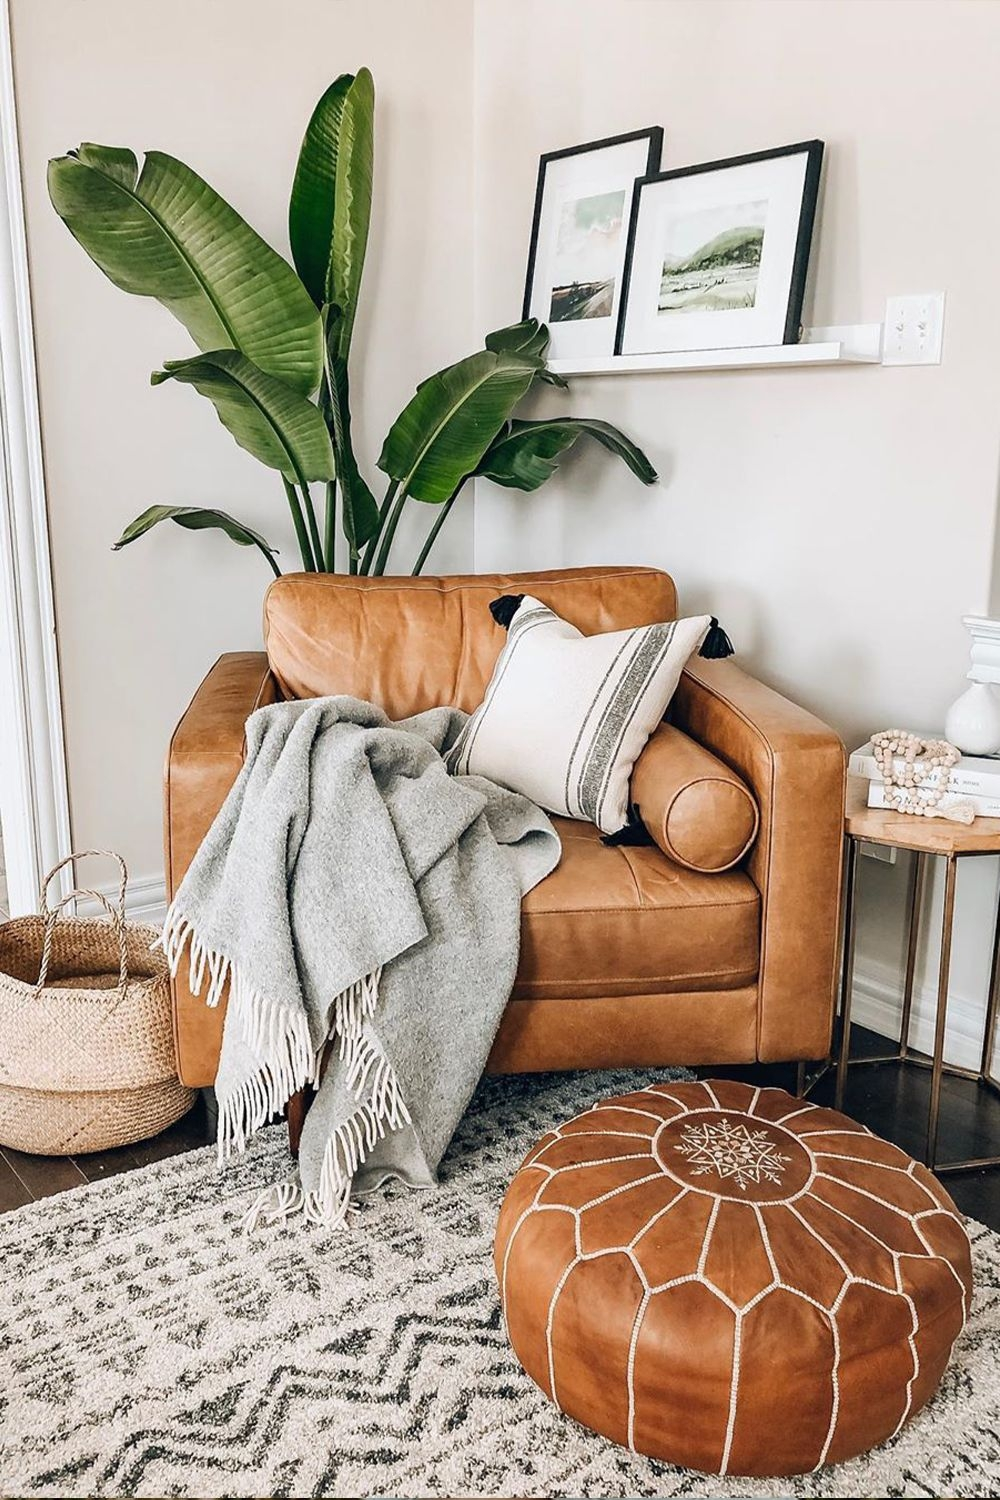 Engaging Boho Living Room Decor On A Budget Ideas Spaces Living Room Chairs On Beauteous Off Moroccan Pouf Ottoman Pouf Moroccan Leather On Boho Living Room Decor On A Budget Ideas Spaces Living Room Chairs